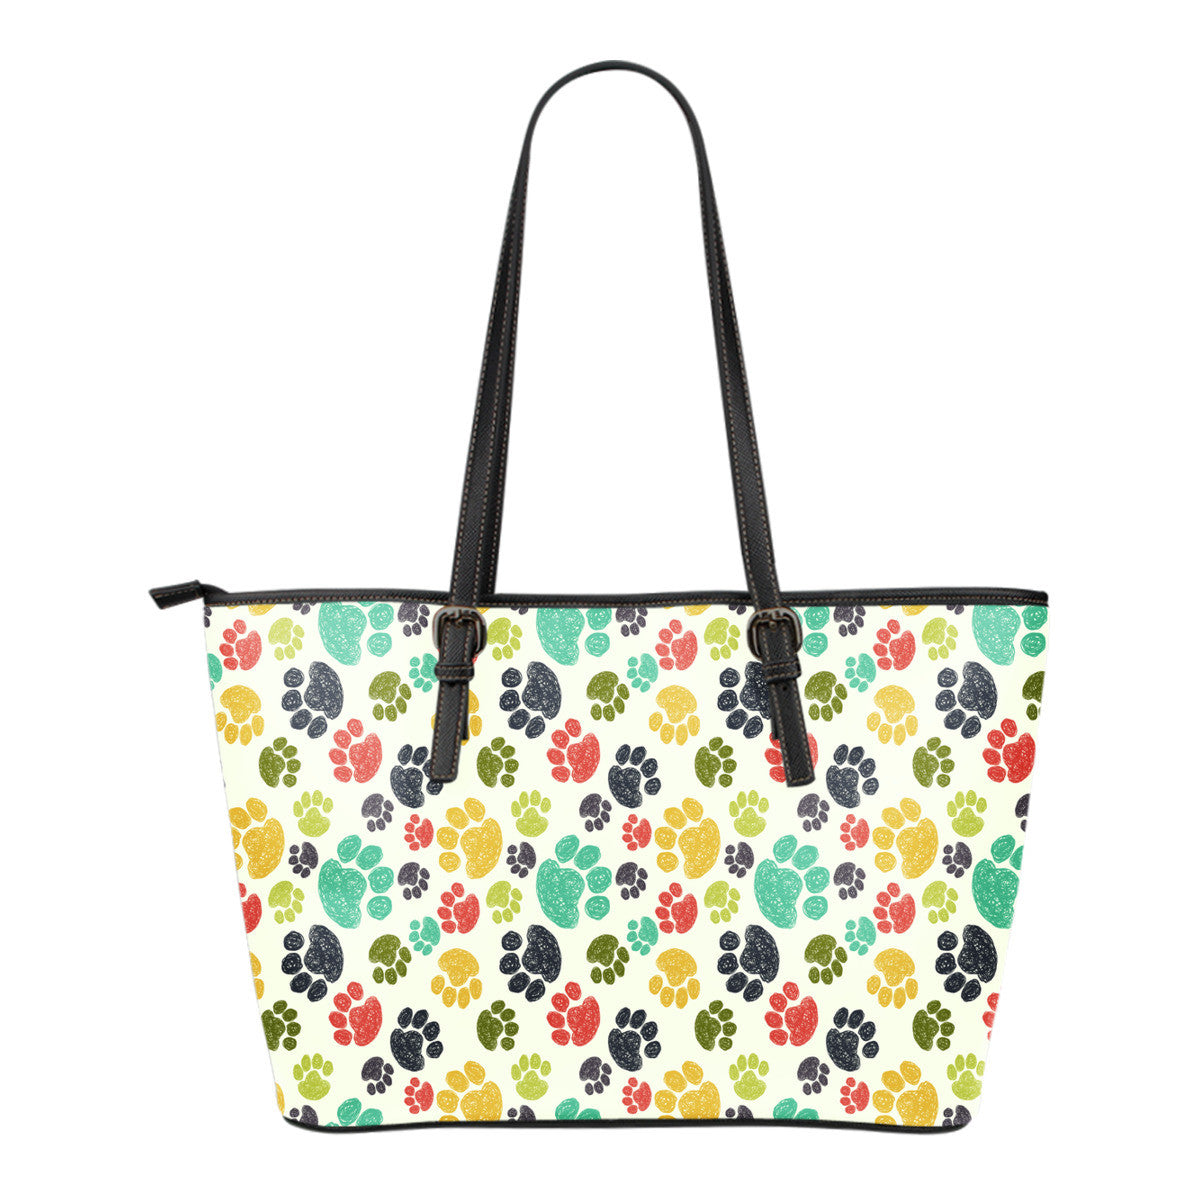 Colorful Paws Small Leather Tote Bag